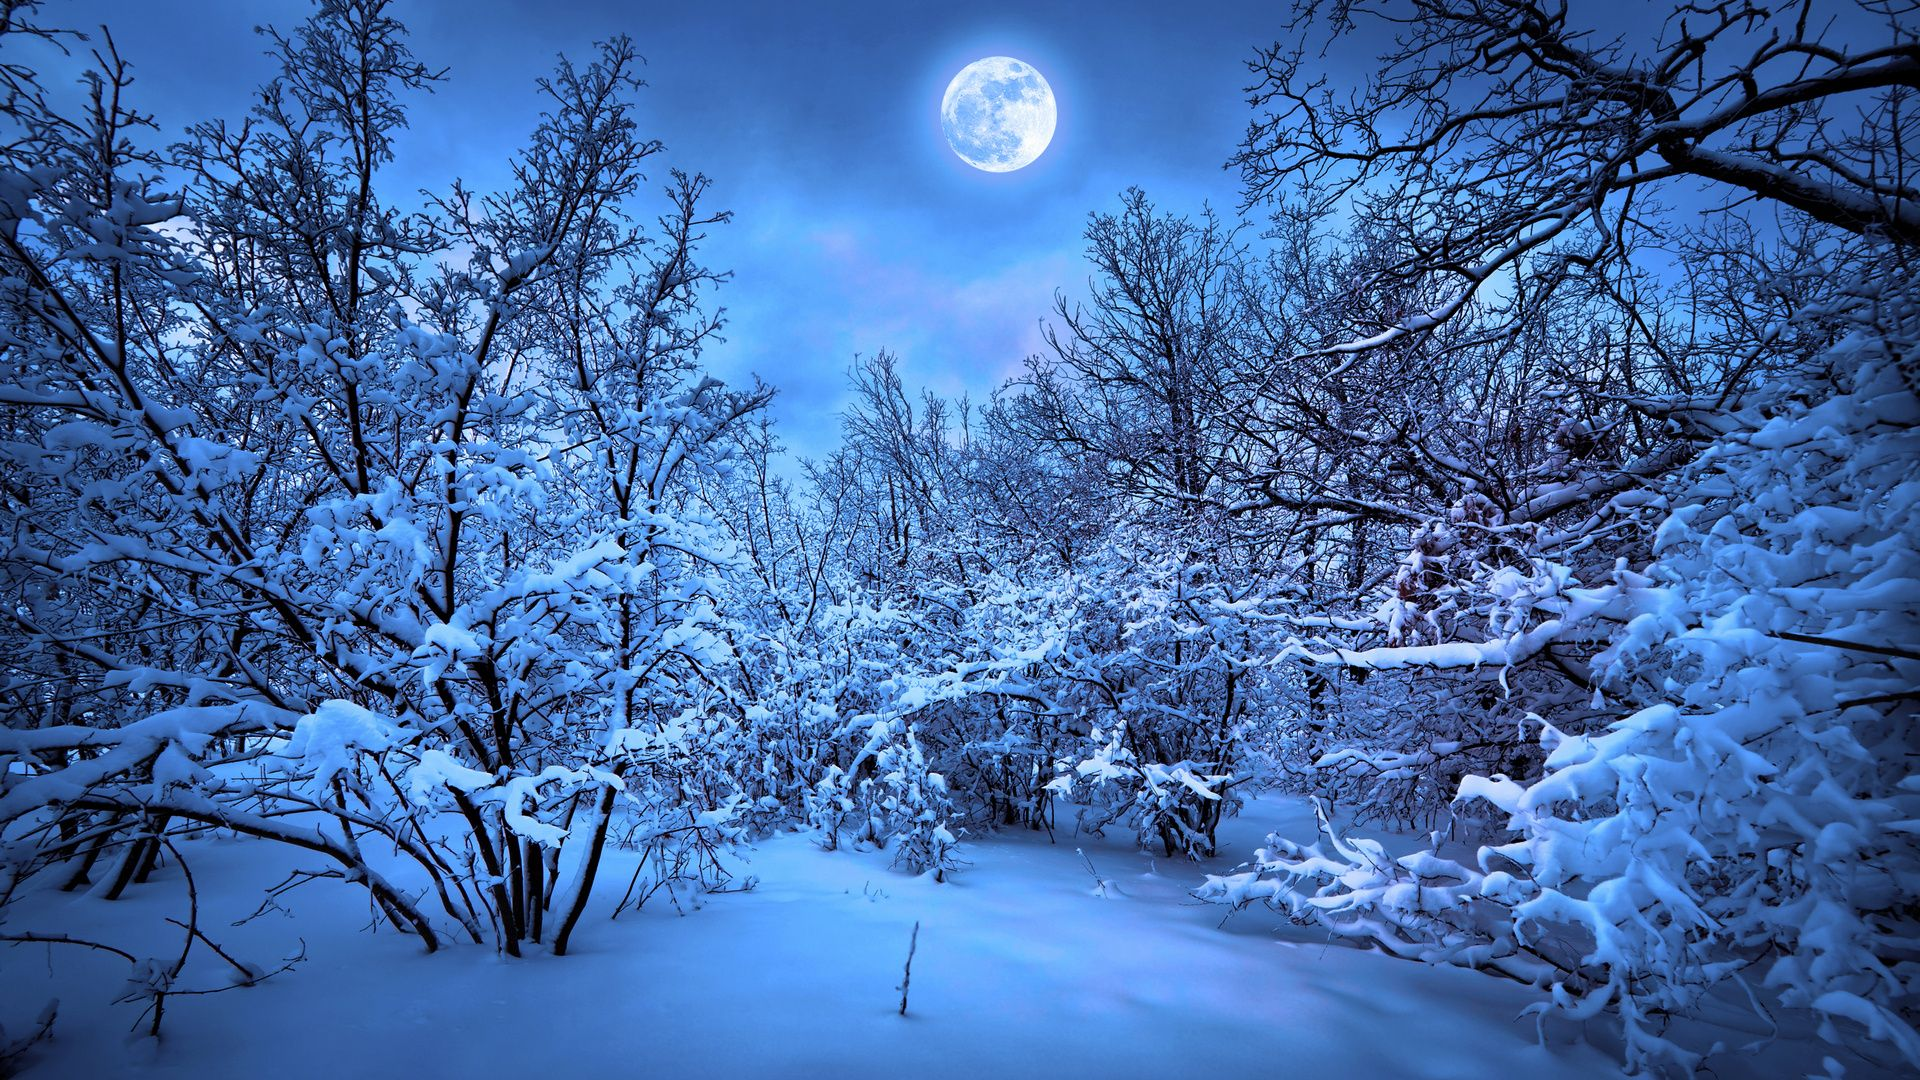 here is snowy night forest wallpaper with id 3288 on forest winter